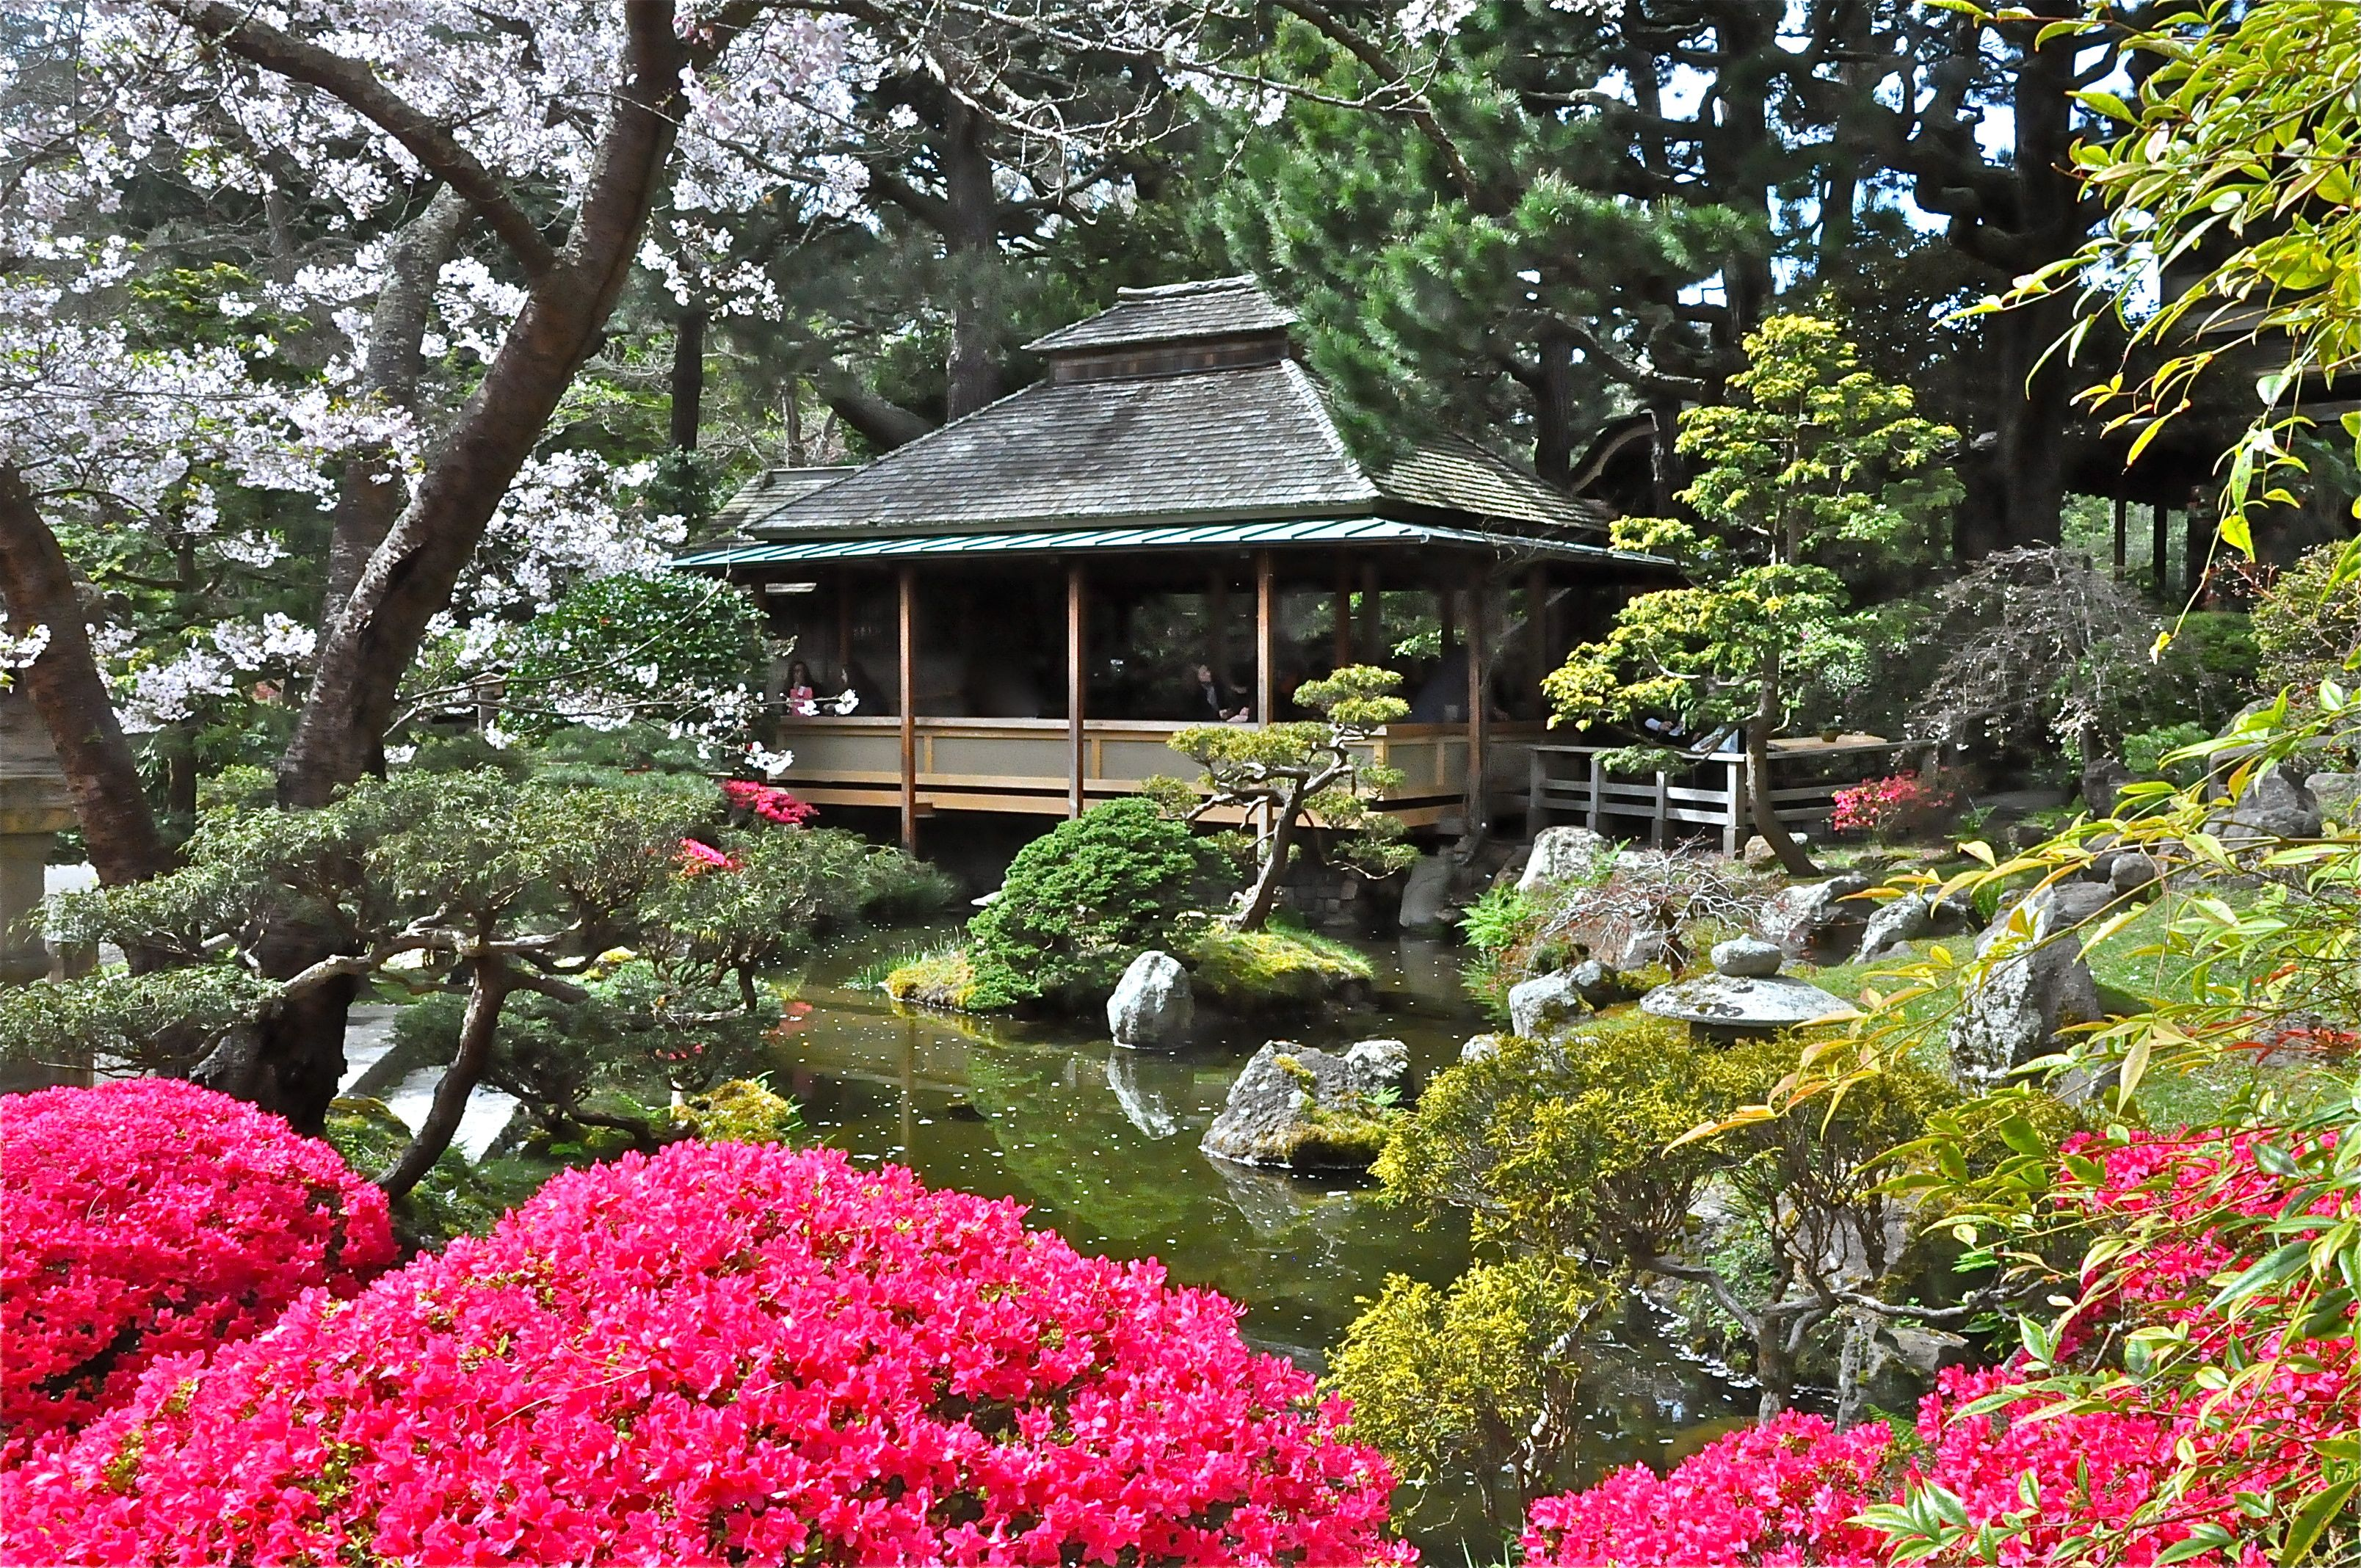 Japanese tea garden golden gate park san francisco ca - Japanese tea garden san francisco ...